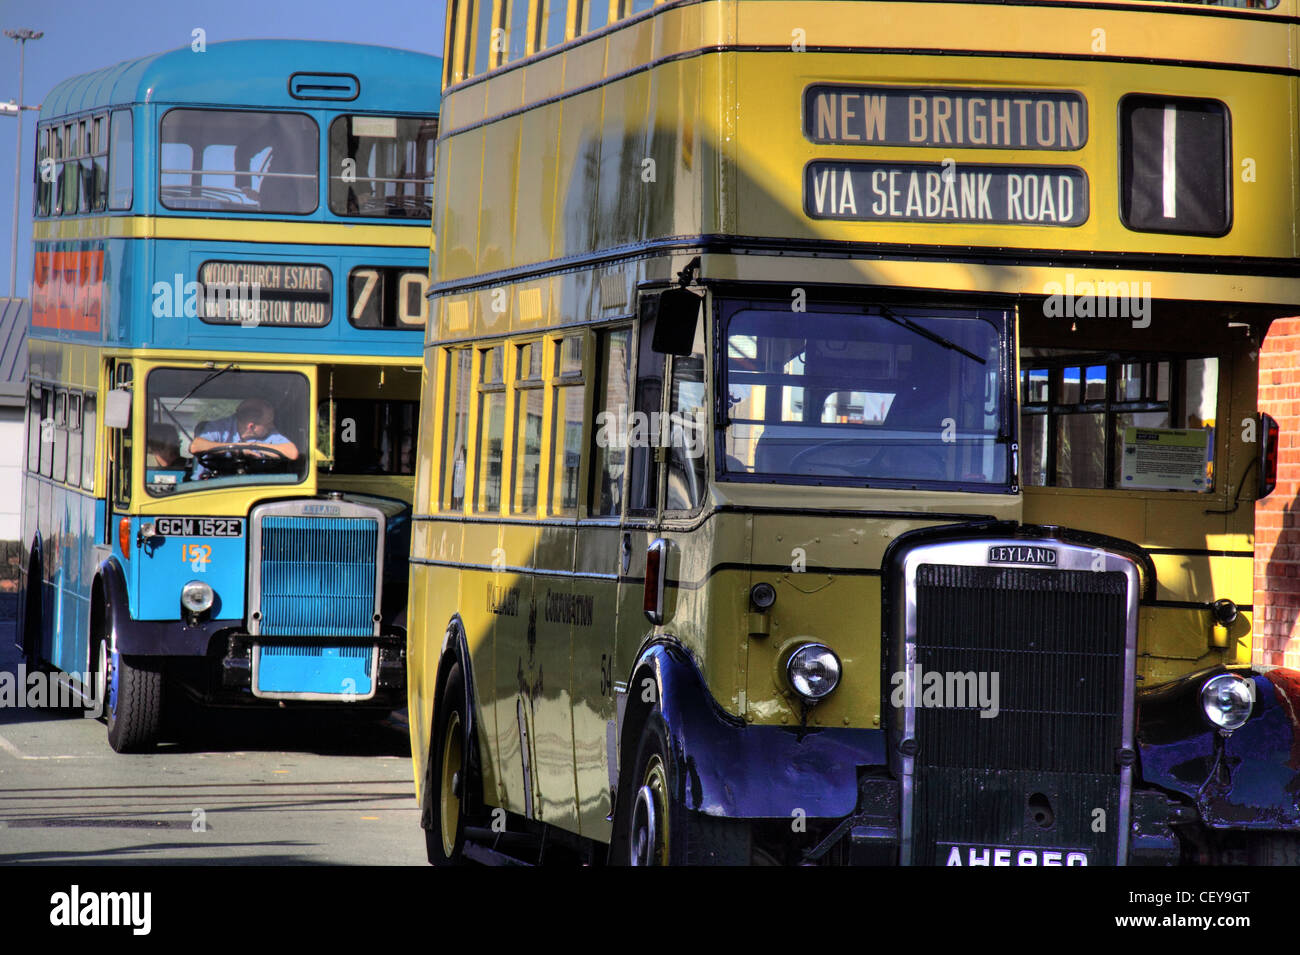 Old,Leyland,Wirral,double,decker,Buses,in,Blue,and,Yellow,Birkenhead,New,Brighton,Merseyside,Liverpool,passenger,transport,merseytravel,depot,museum,via,Seabank,road,twerlies,scouse,scousers,transport,bus,corporation,Birkenhead,Corporation,and,Wallasey,Corporation,motor,buses,Wirral,Transport,Museum,1951,Leyland,PD2/1,AHF,850,(54).,Preserver,Cedric,Greenwood,(1973).,Funding,purchased,New,Wallasey,1BG Project GCM 152E,a 1967 Leyland PD2/37 (152). Restored with Hamilton Quarter funding,Wirral,Museums,/,201,&,1BG,Project,AHF850,and,GCM152E,Birkenhead,Corporation,and,Wallasey,Corporation,motor,buses,gotonysmith,Wirral Transport Museum,Buy Pictures of,Buy Images Of